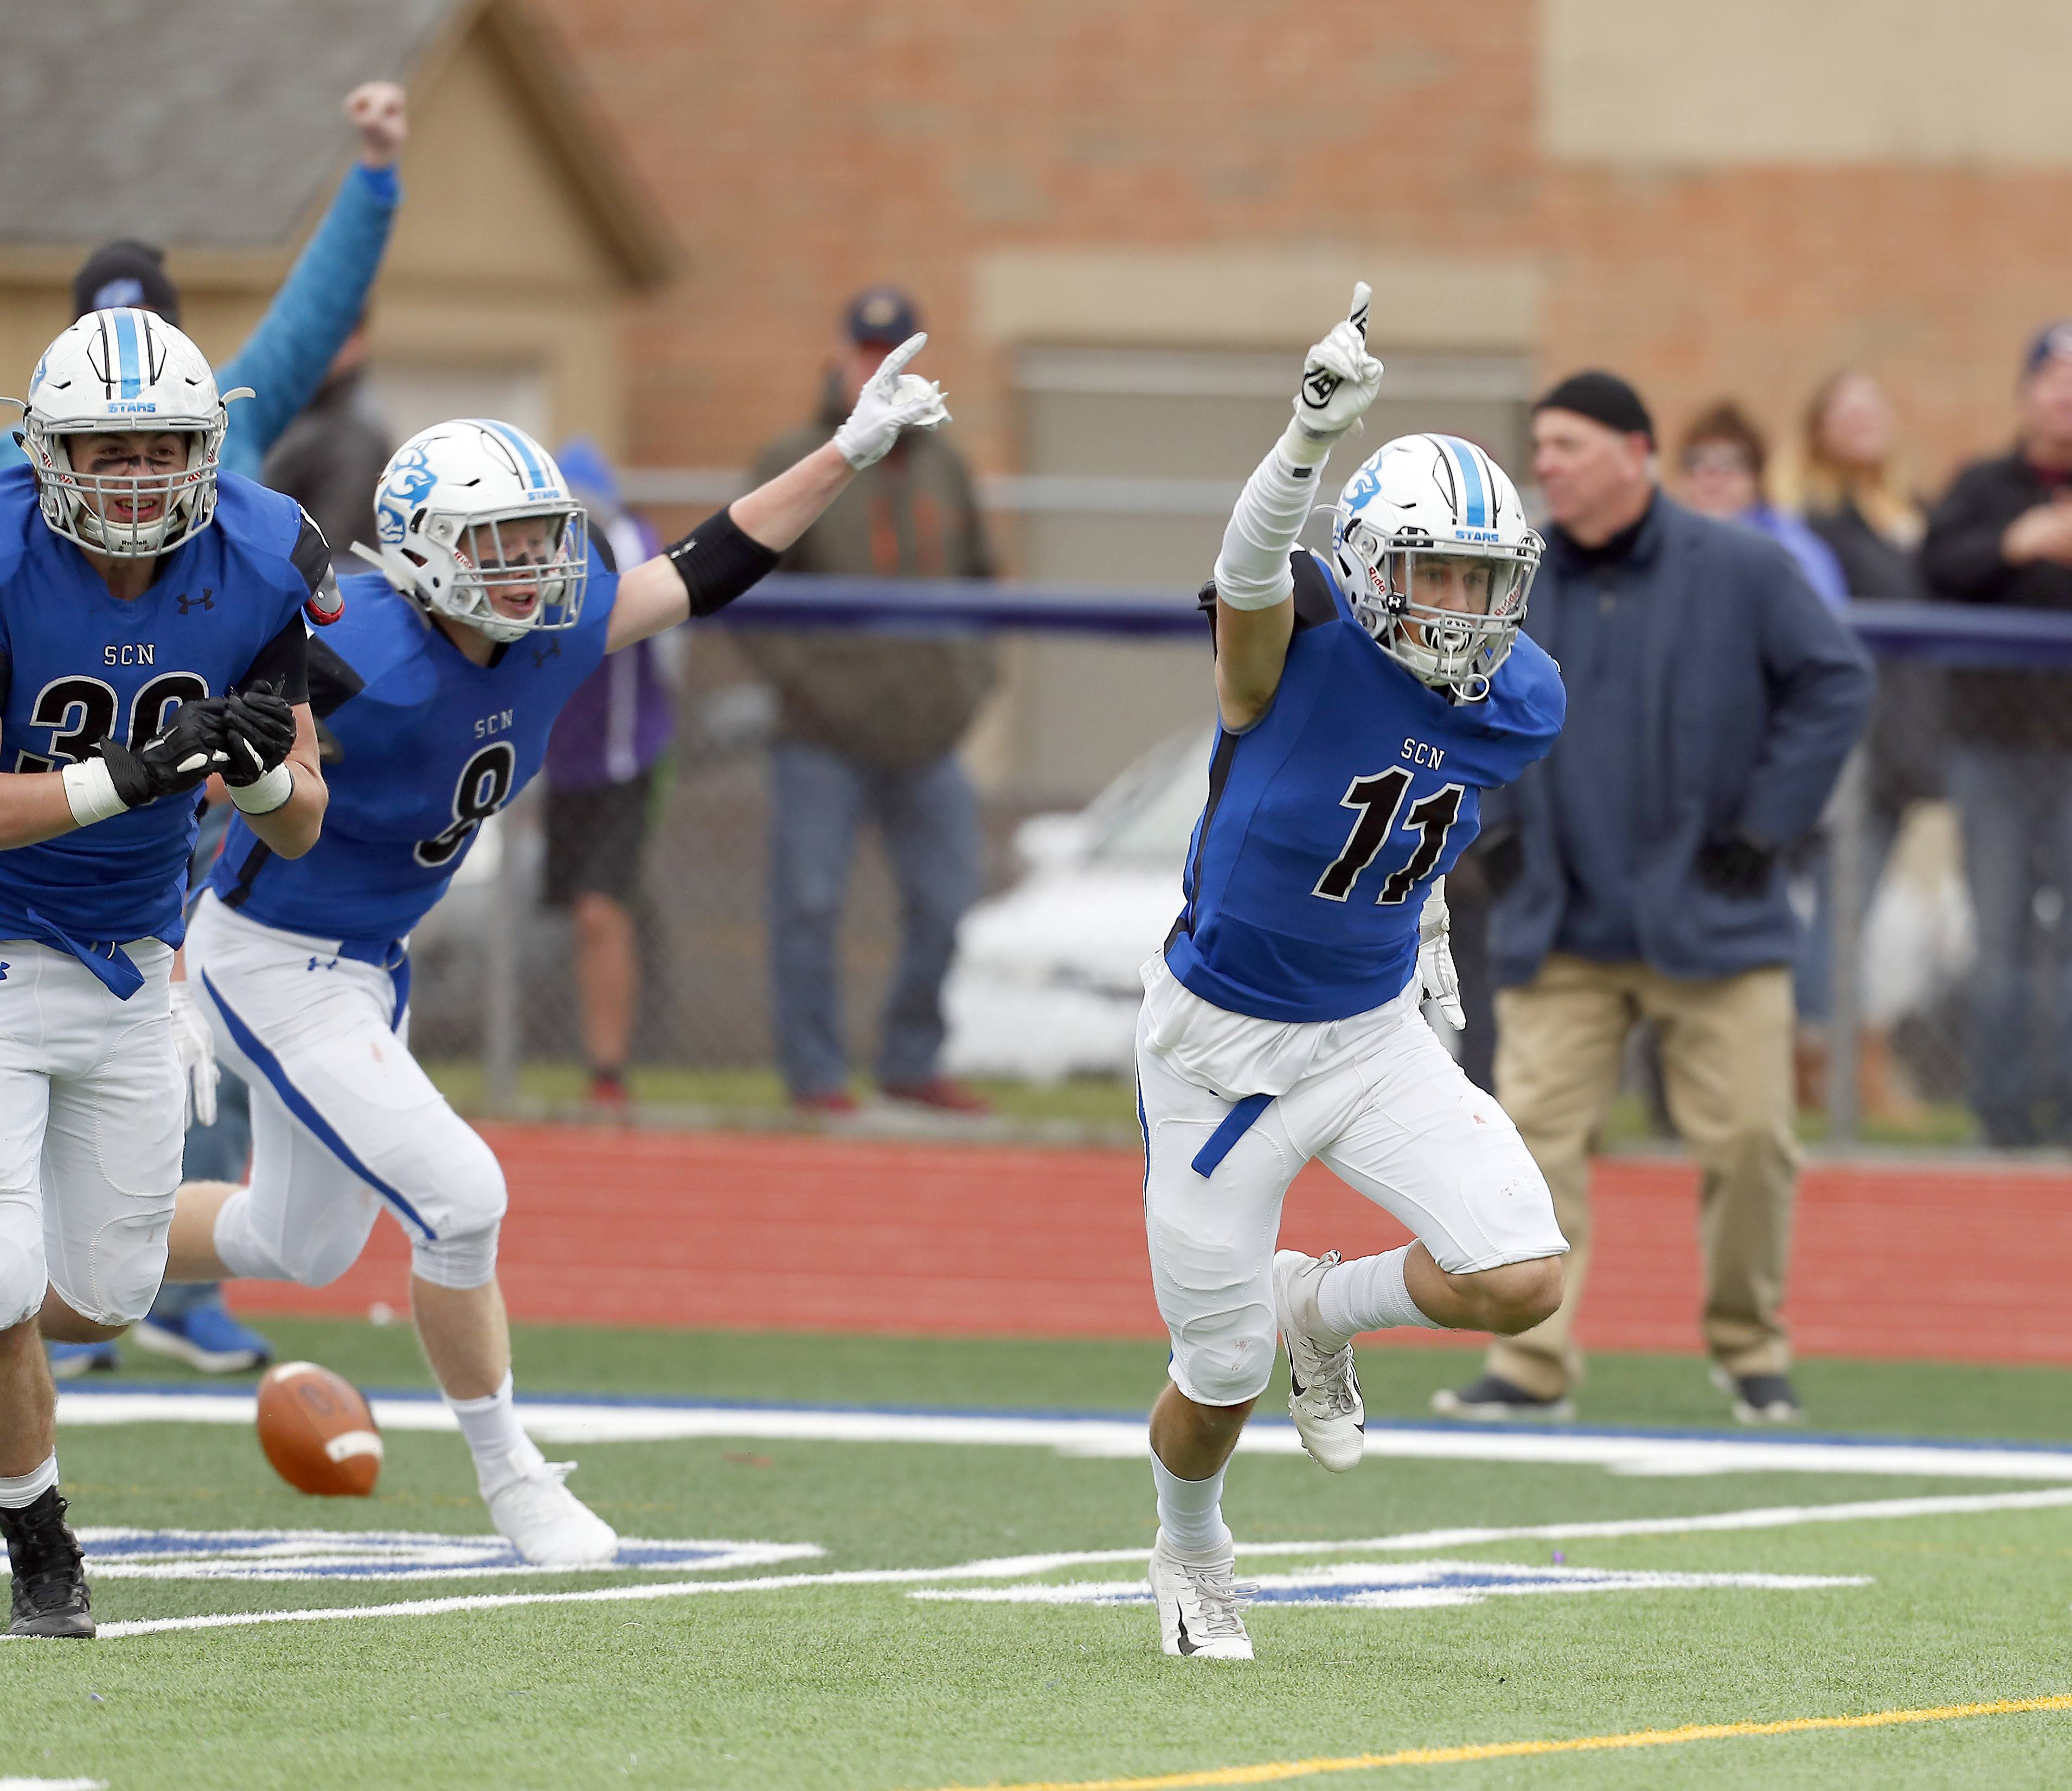 St. Charles North's Egon Hein (11) and his teammates celebrate their win Saturday during IHSA Class 7A playoff football in St. Charles.